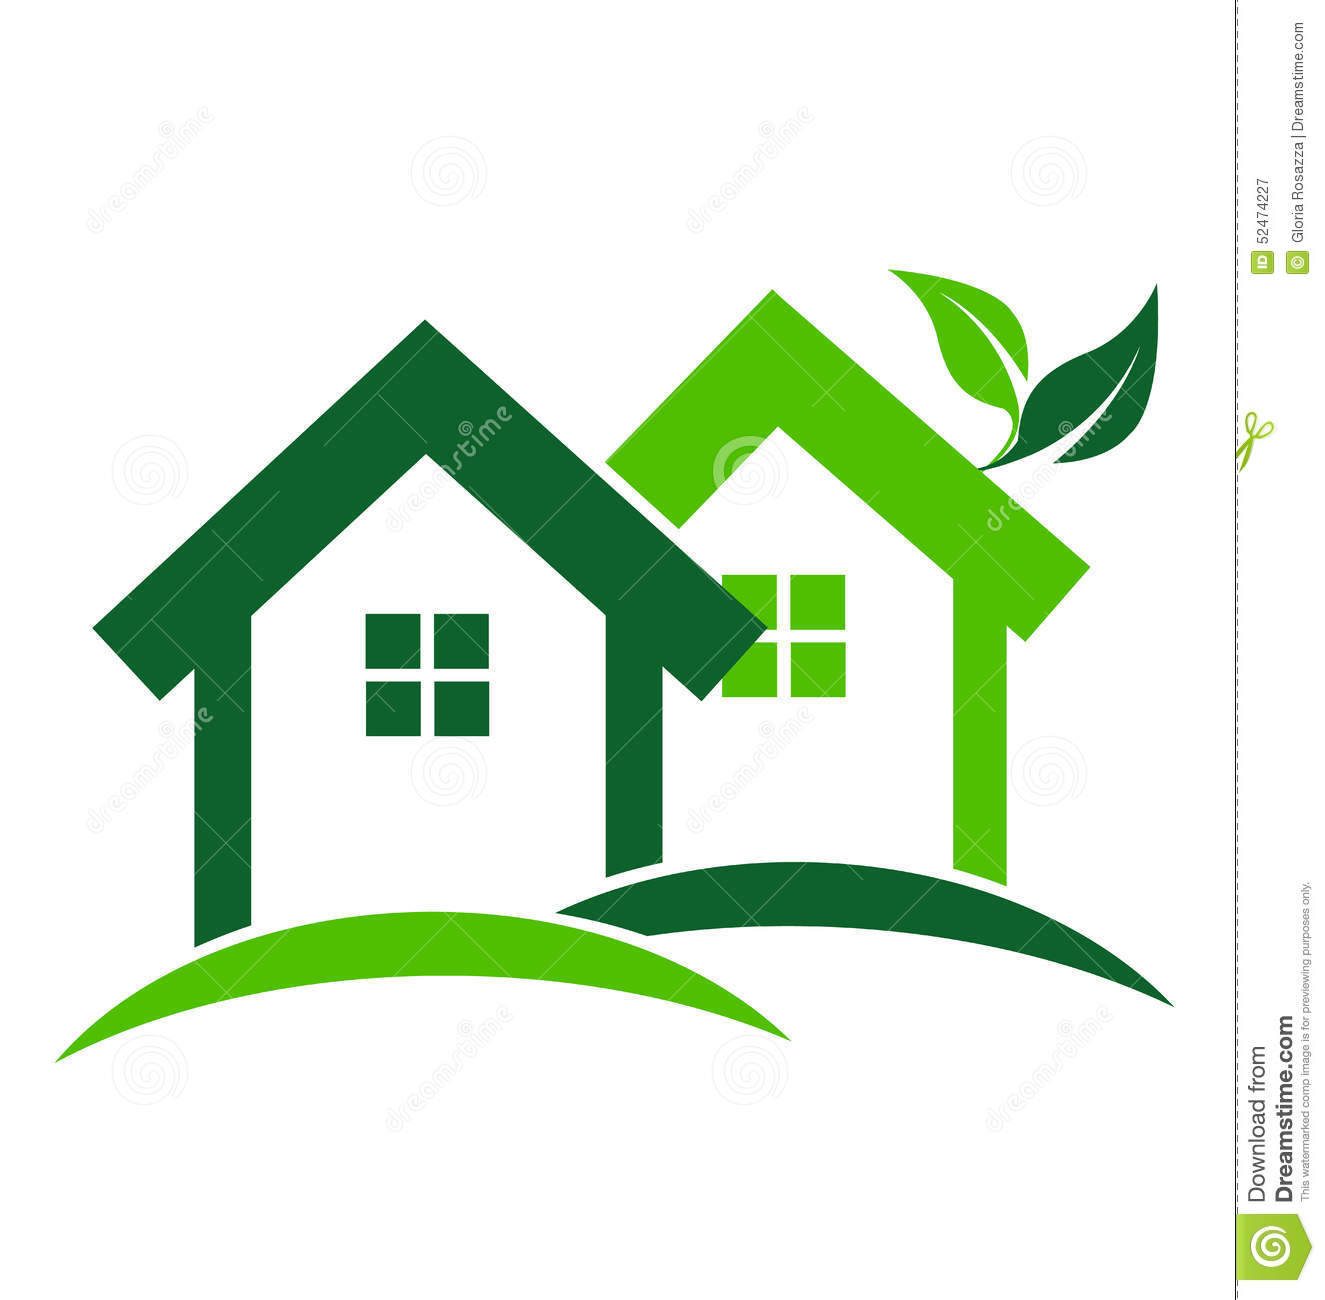 Green Houses Logo Stock Vector Image 52474227 Best Home Design Pictures  Interior Ideas.